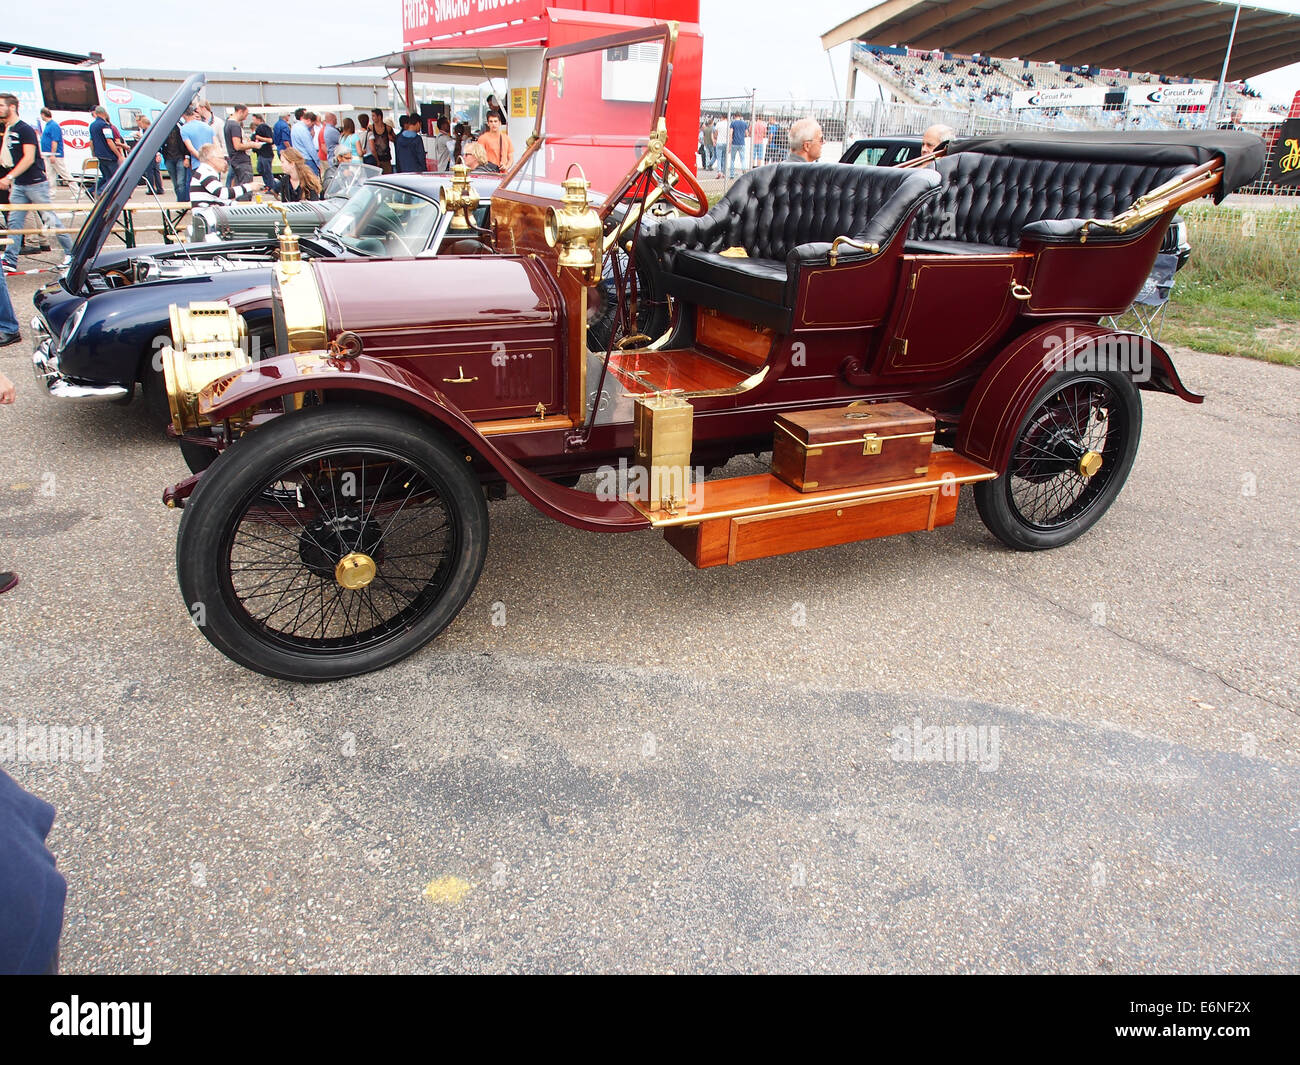 1910 Straker Squire 2800cc, Nr519, pic2 - Stock Image